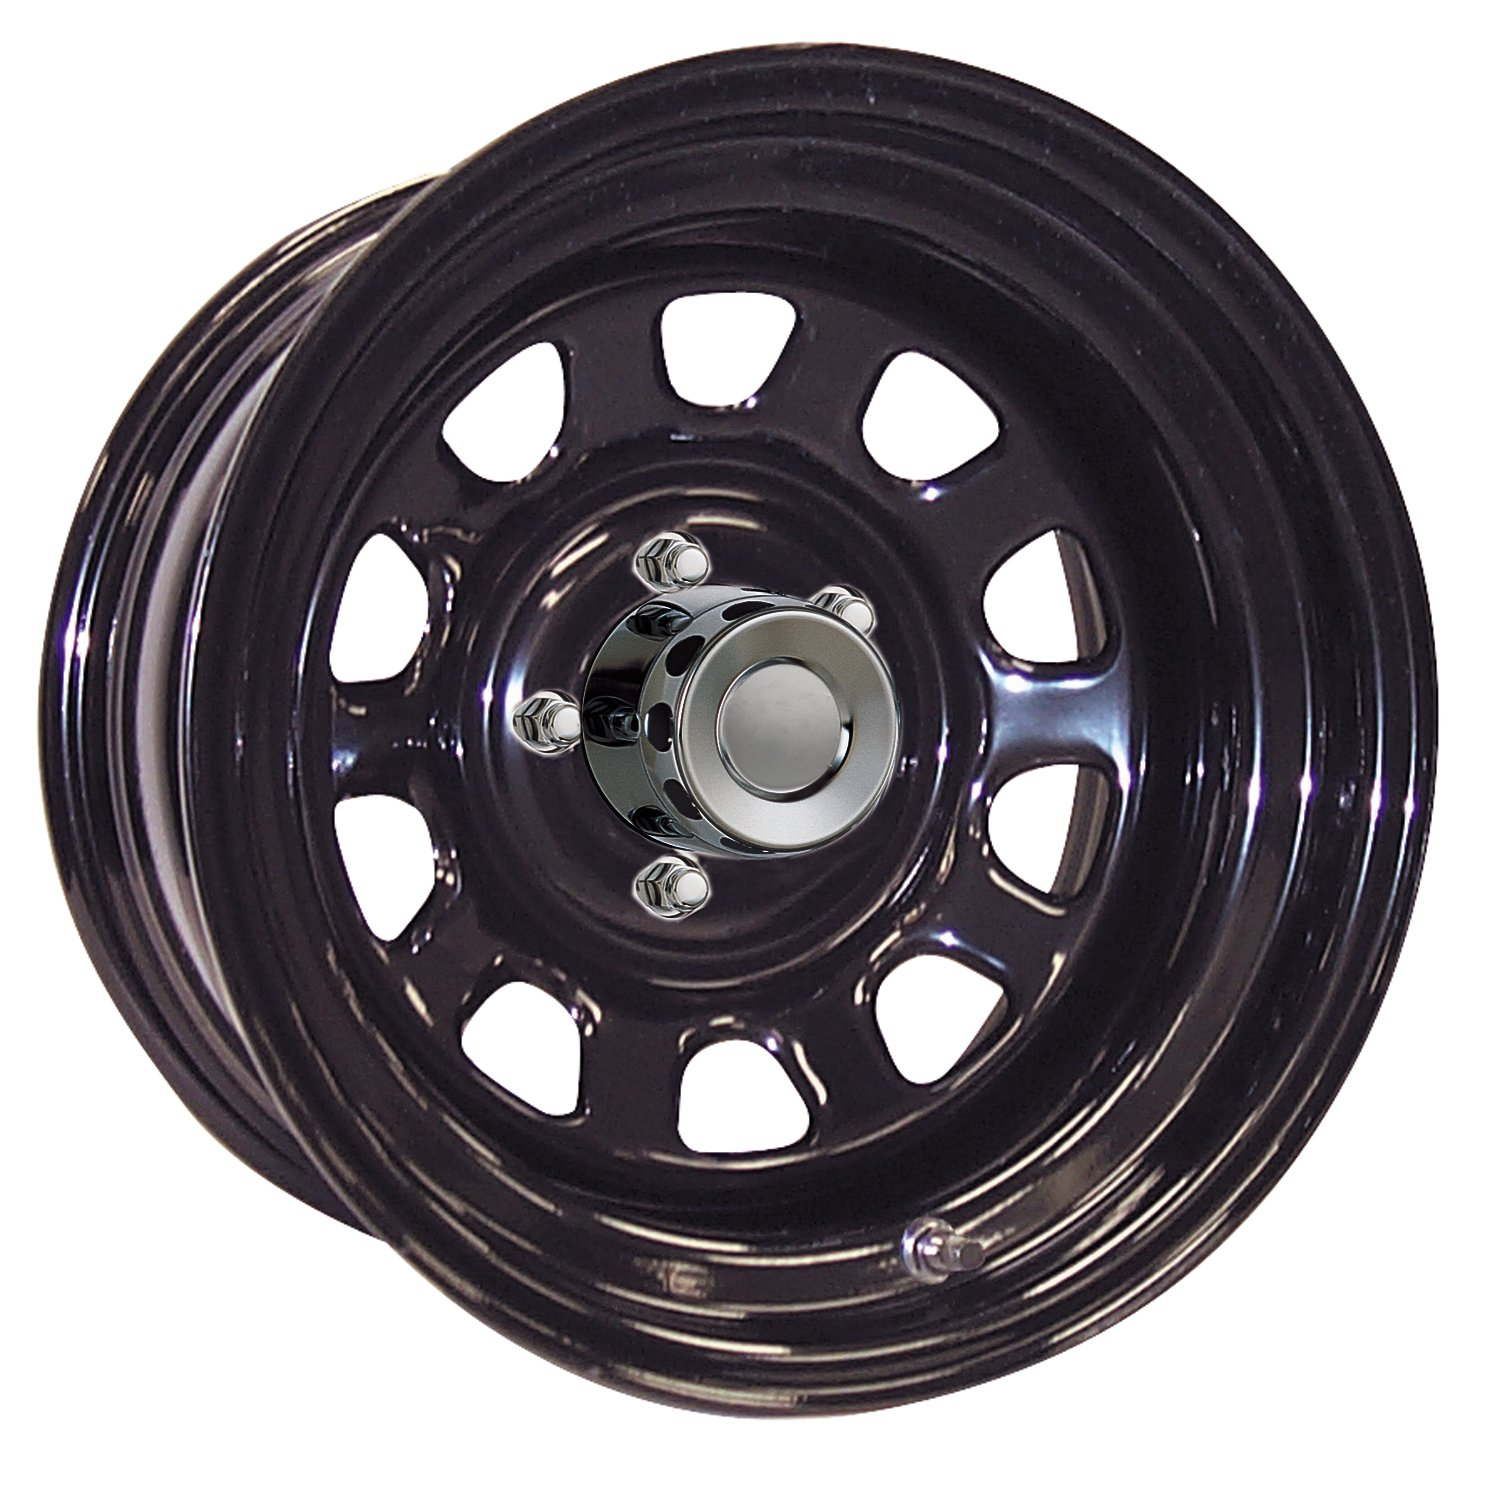 Pro Comp Steel Wheels Series 52 Wheel with Gloss Black Finish (16x15''/8x5.5'')